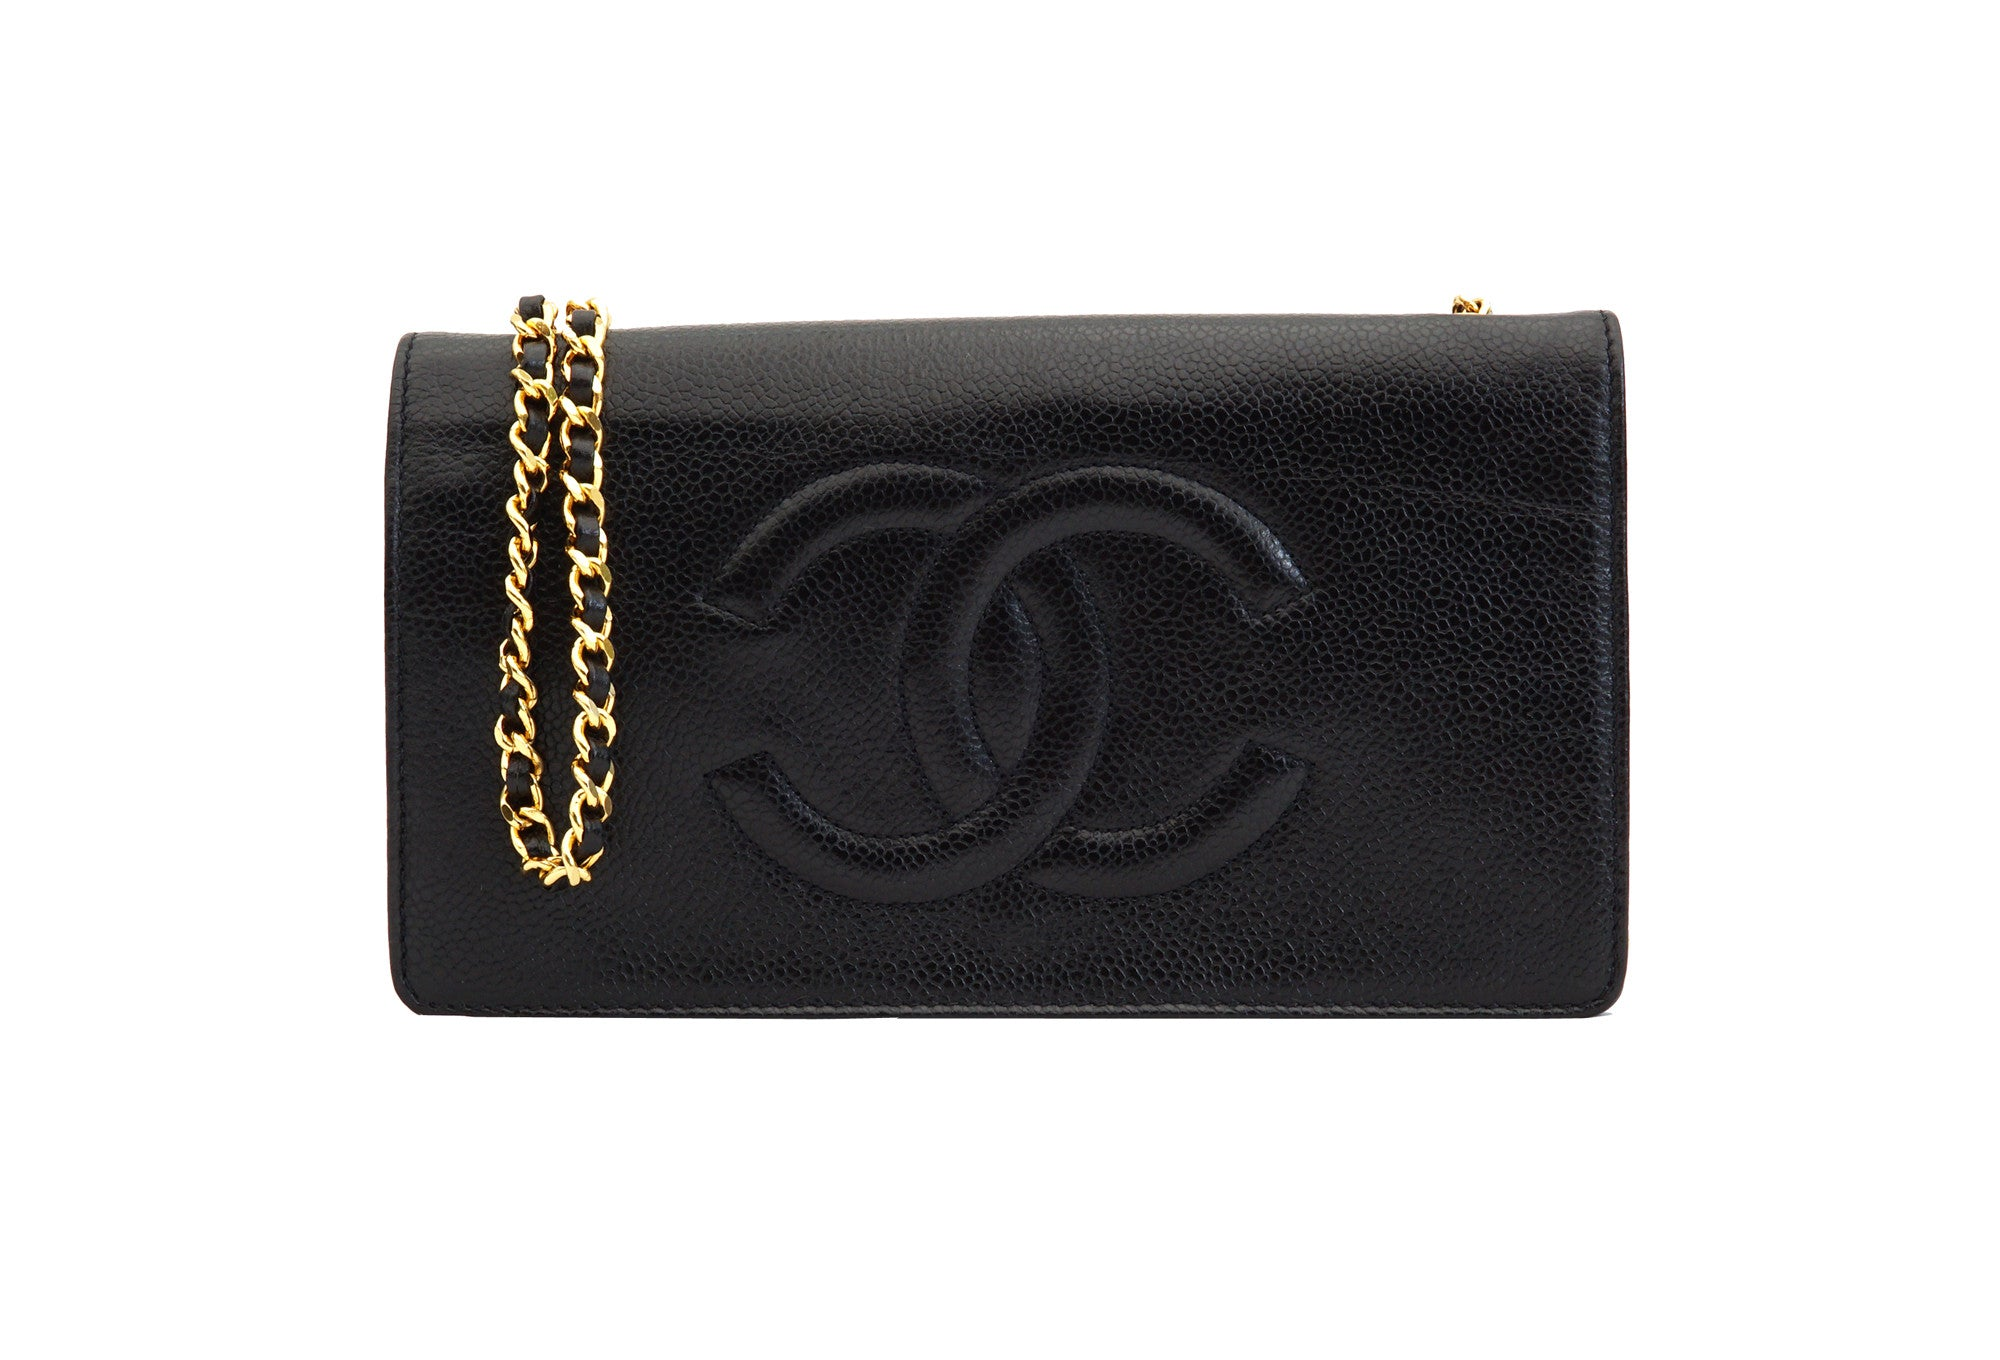 6a7a955e99a5 CHANEL VINTAGE WALLET ON CHAIN - Caviar Black - Vintage District